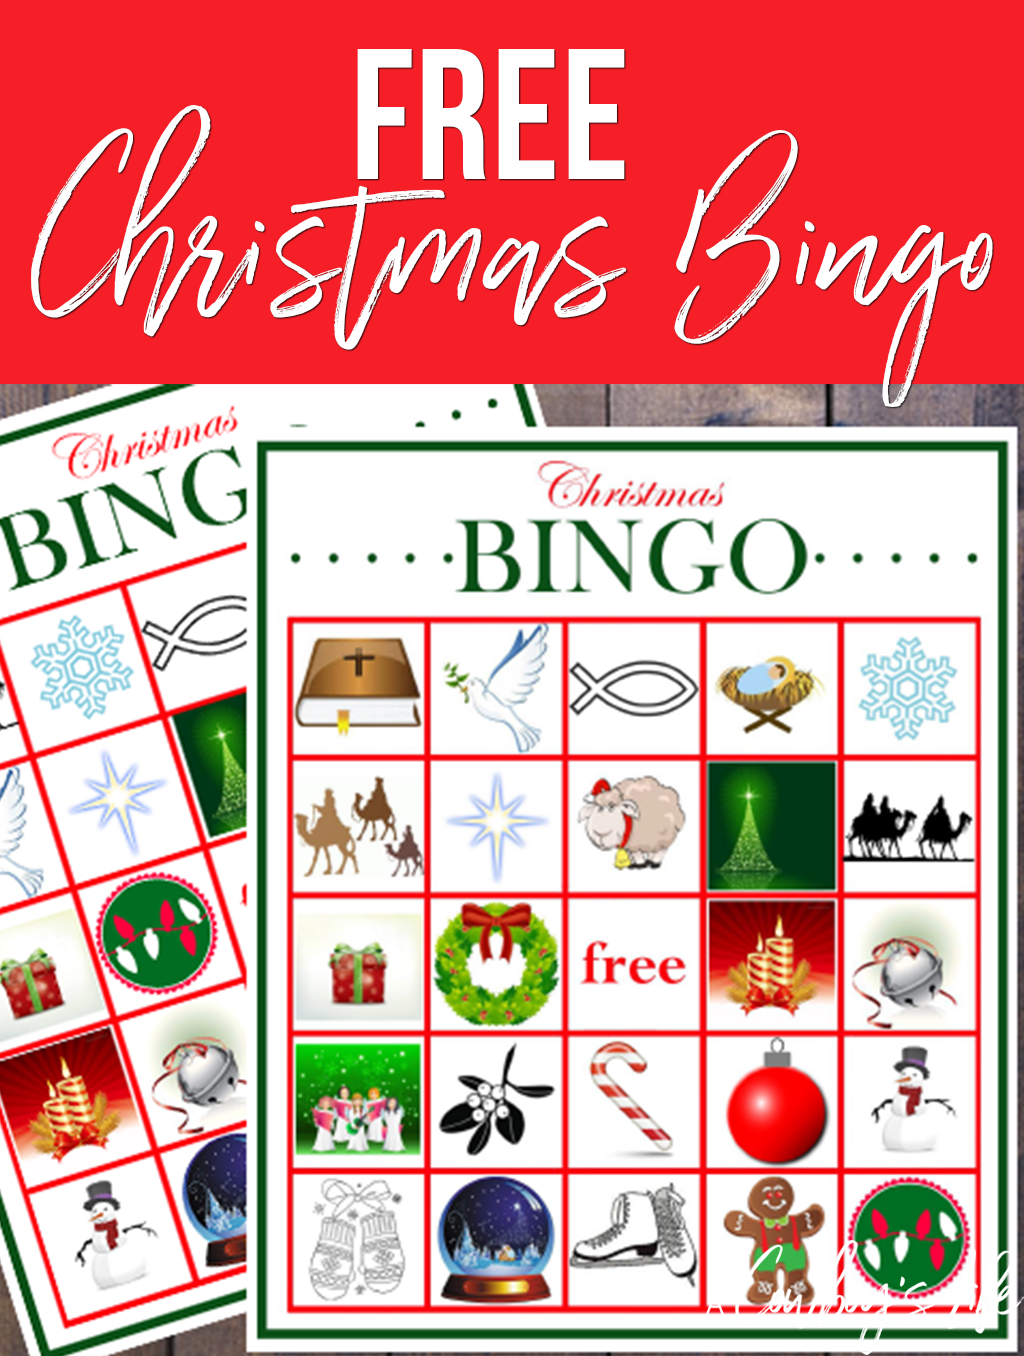 photograph about Christmas Bingo Free Printable identify Absolutely free Printable Xmas Bingo - A Cowboys Everyday living